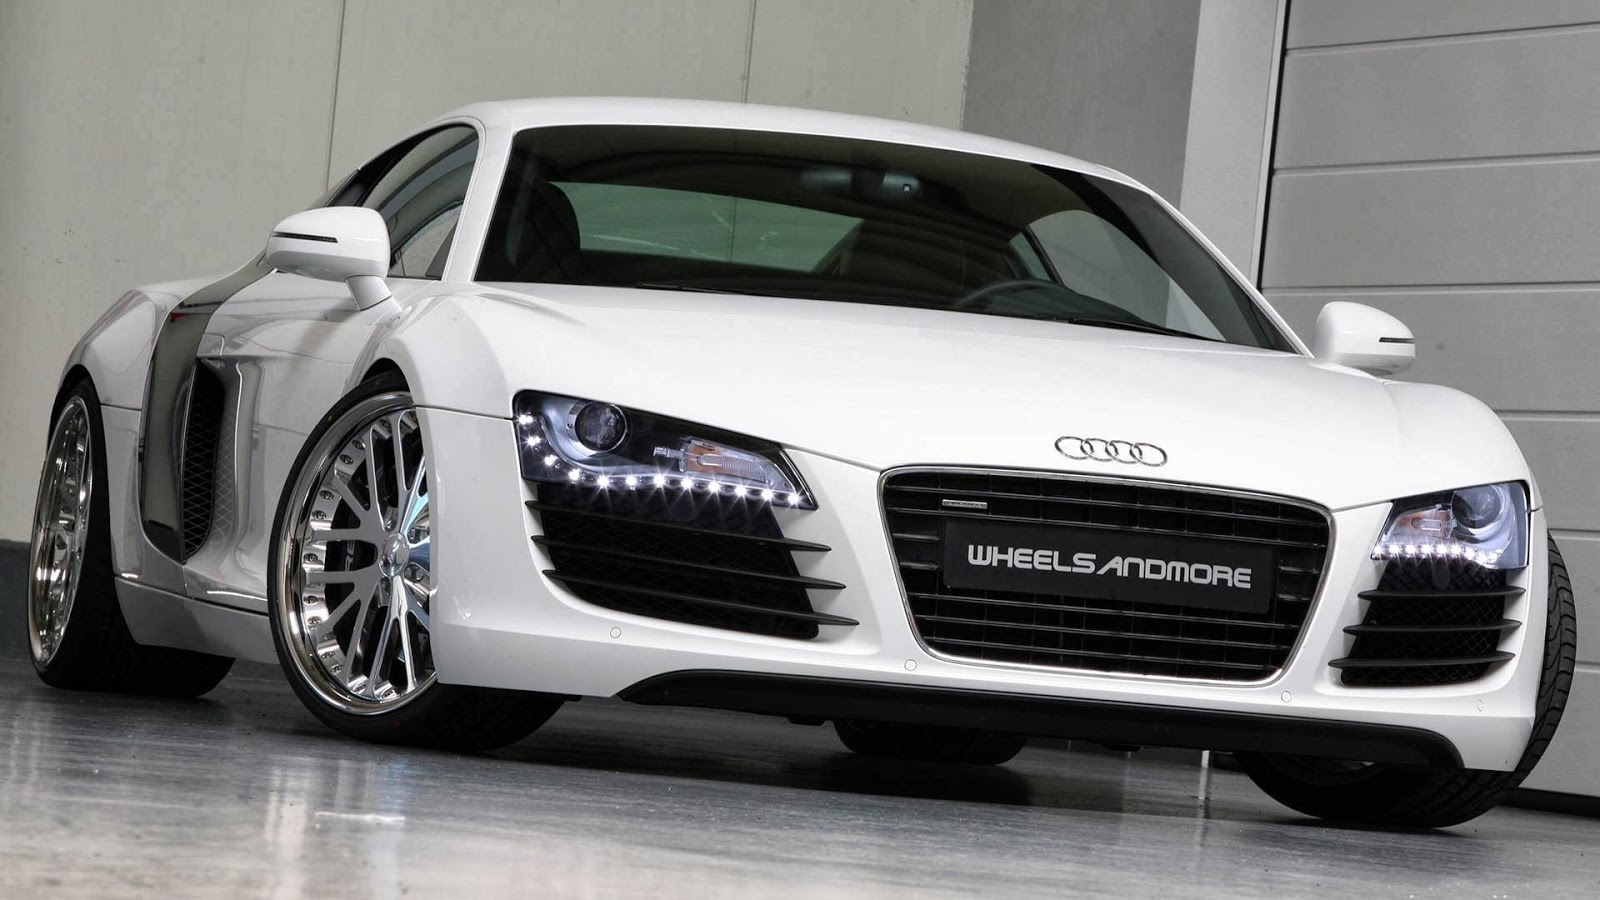 The best looking car with great and amazing engine which supply good power and they make the best car in the world